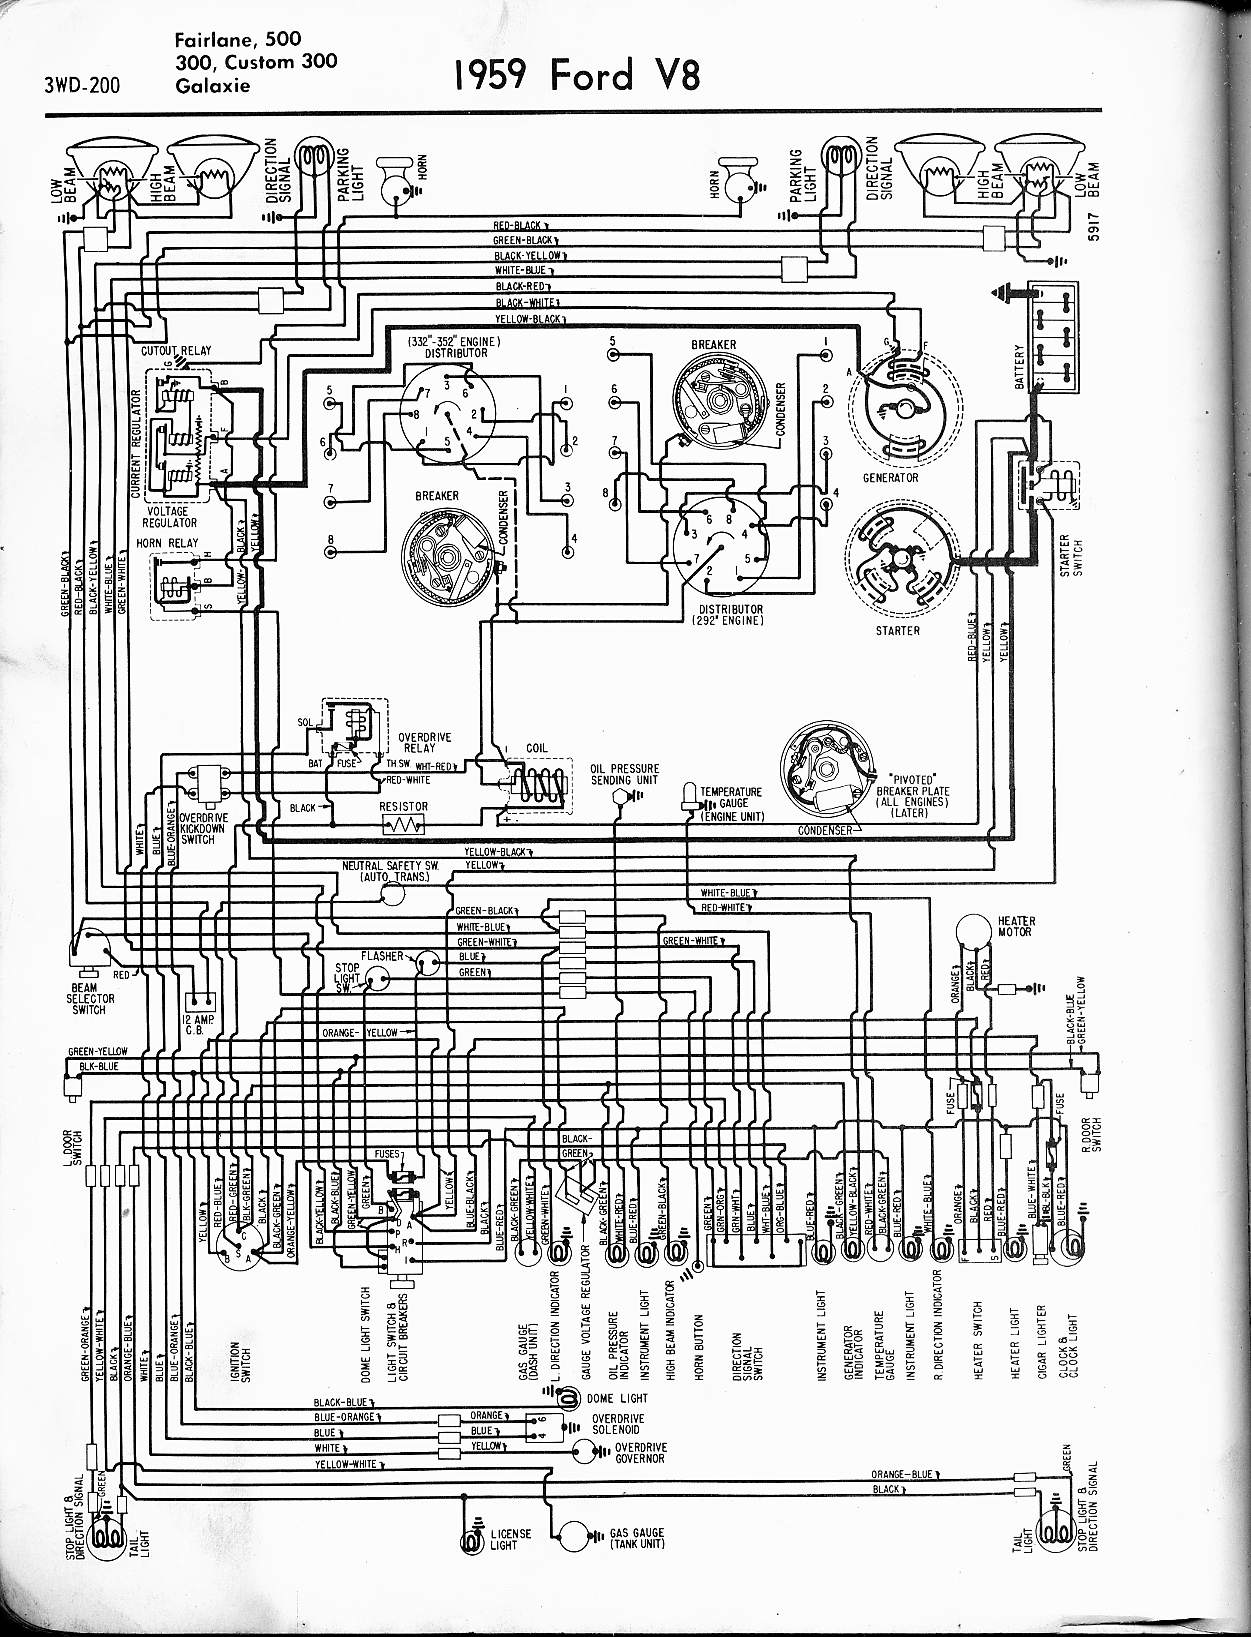 57 Ford Truck Wiring Diagram Data 65 F100 Diagrams 1956 Power Window